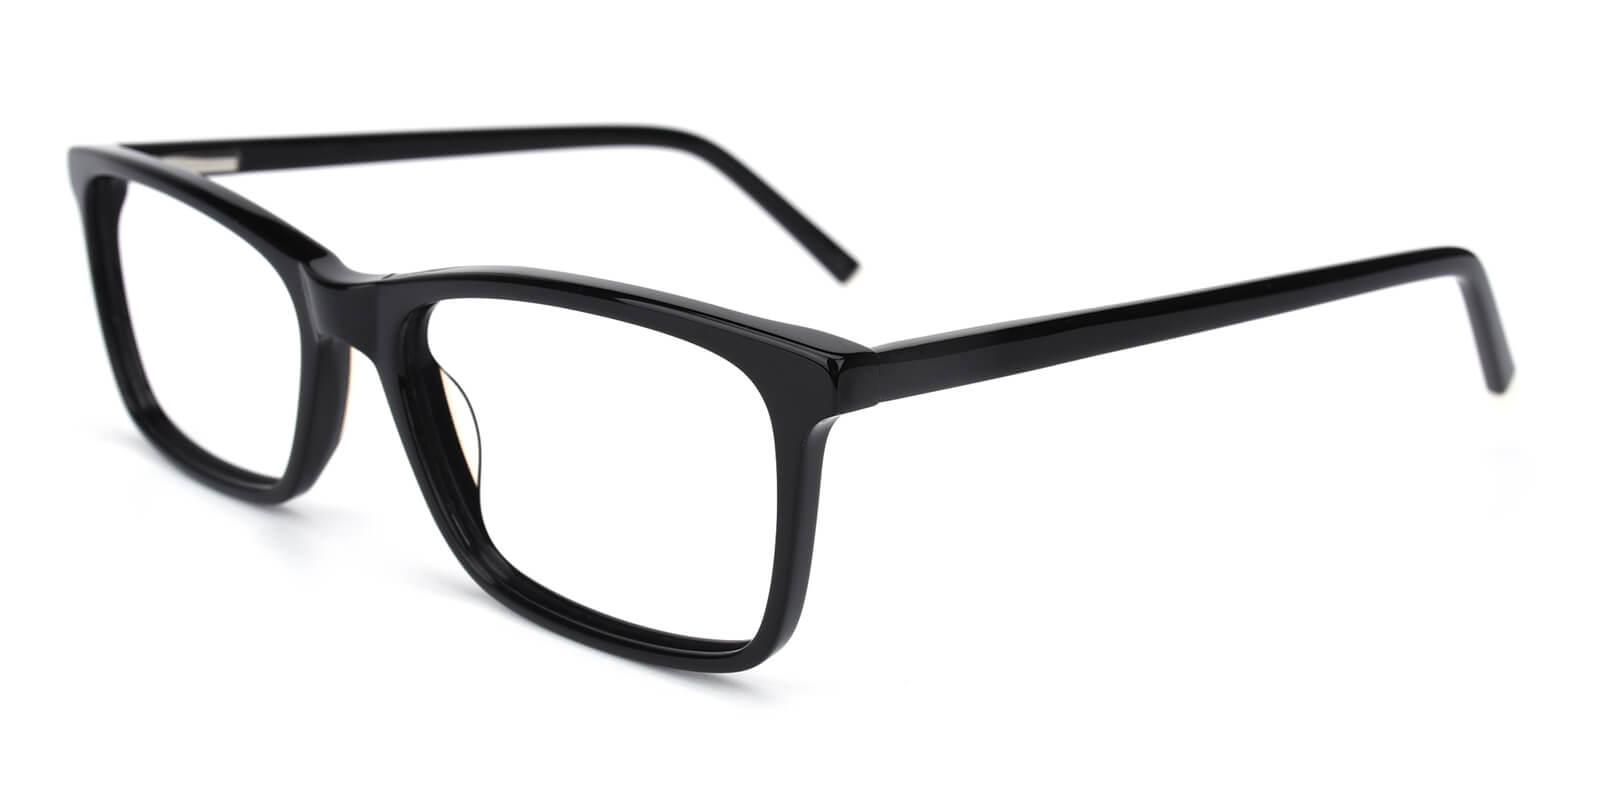 Crane-Black-Rectangle-Acetate-Eyeglasses-additional1